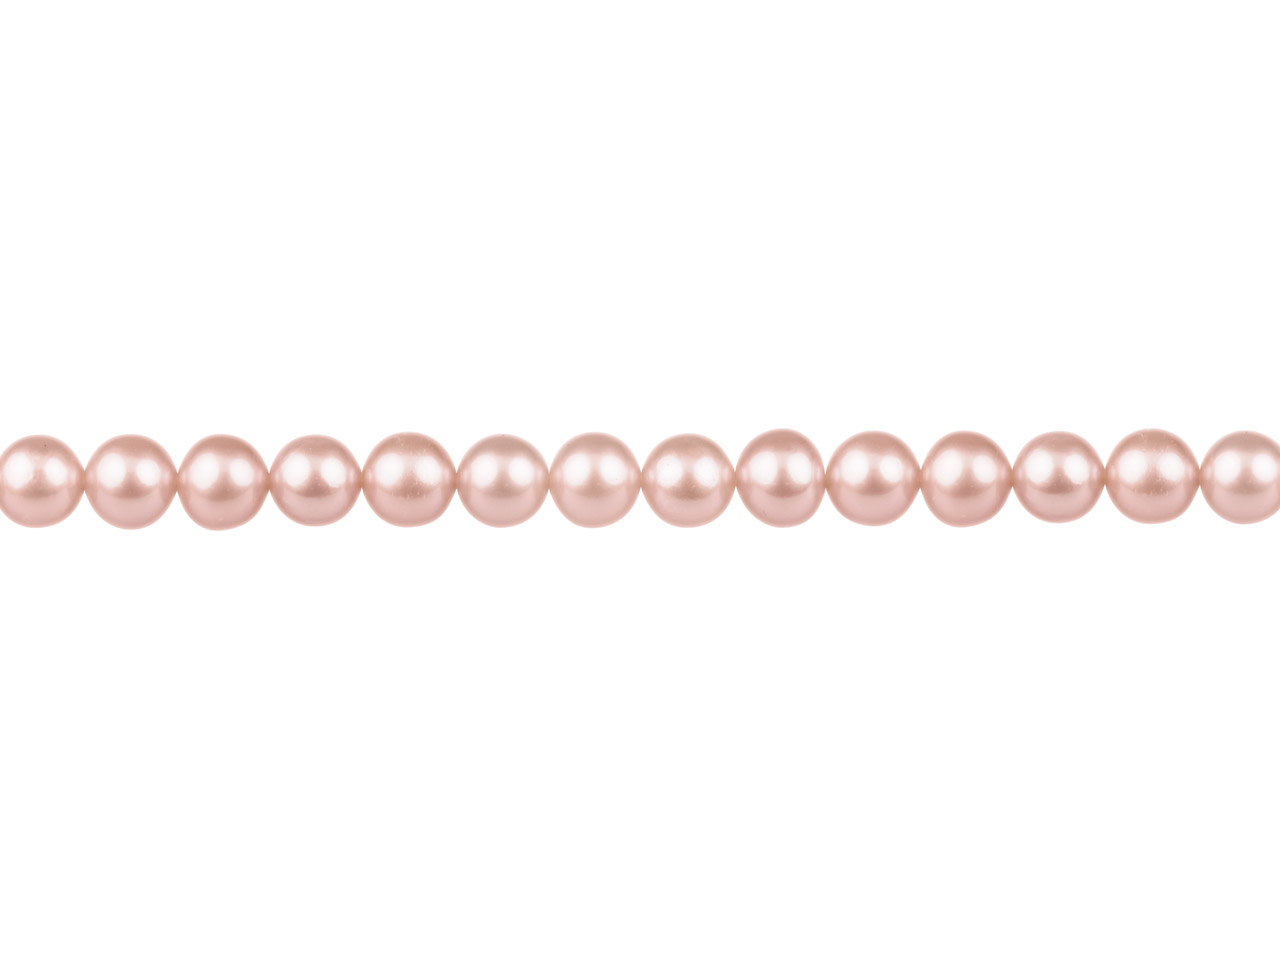 Cultured Pearls Fresh Water,       6-6.5mm, Peach/pink, Potato Round, 16